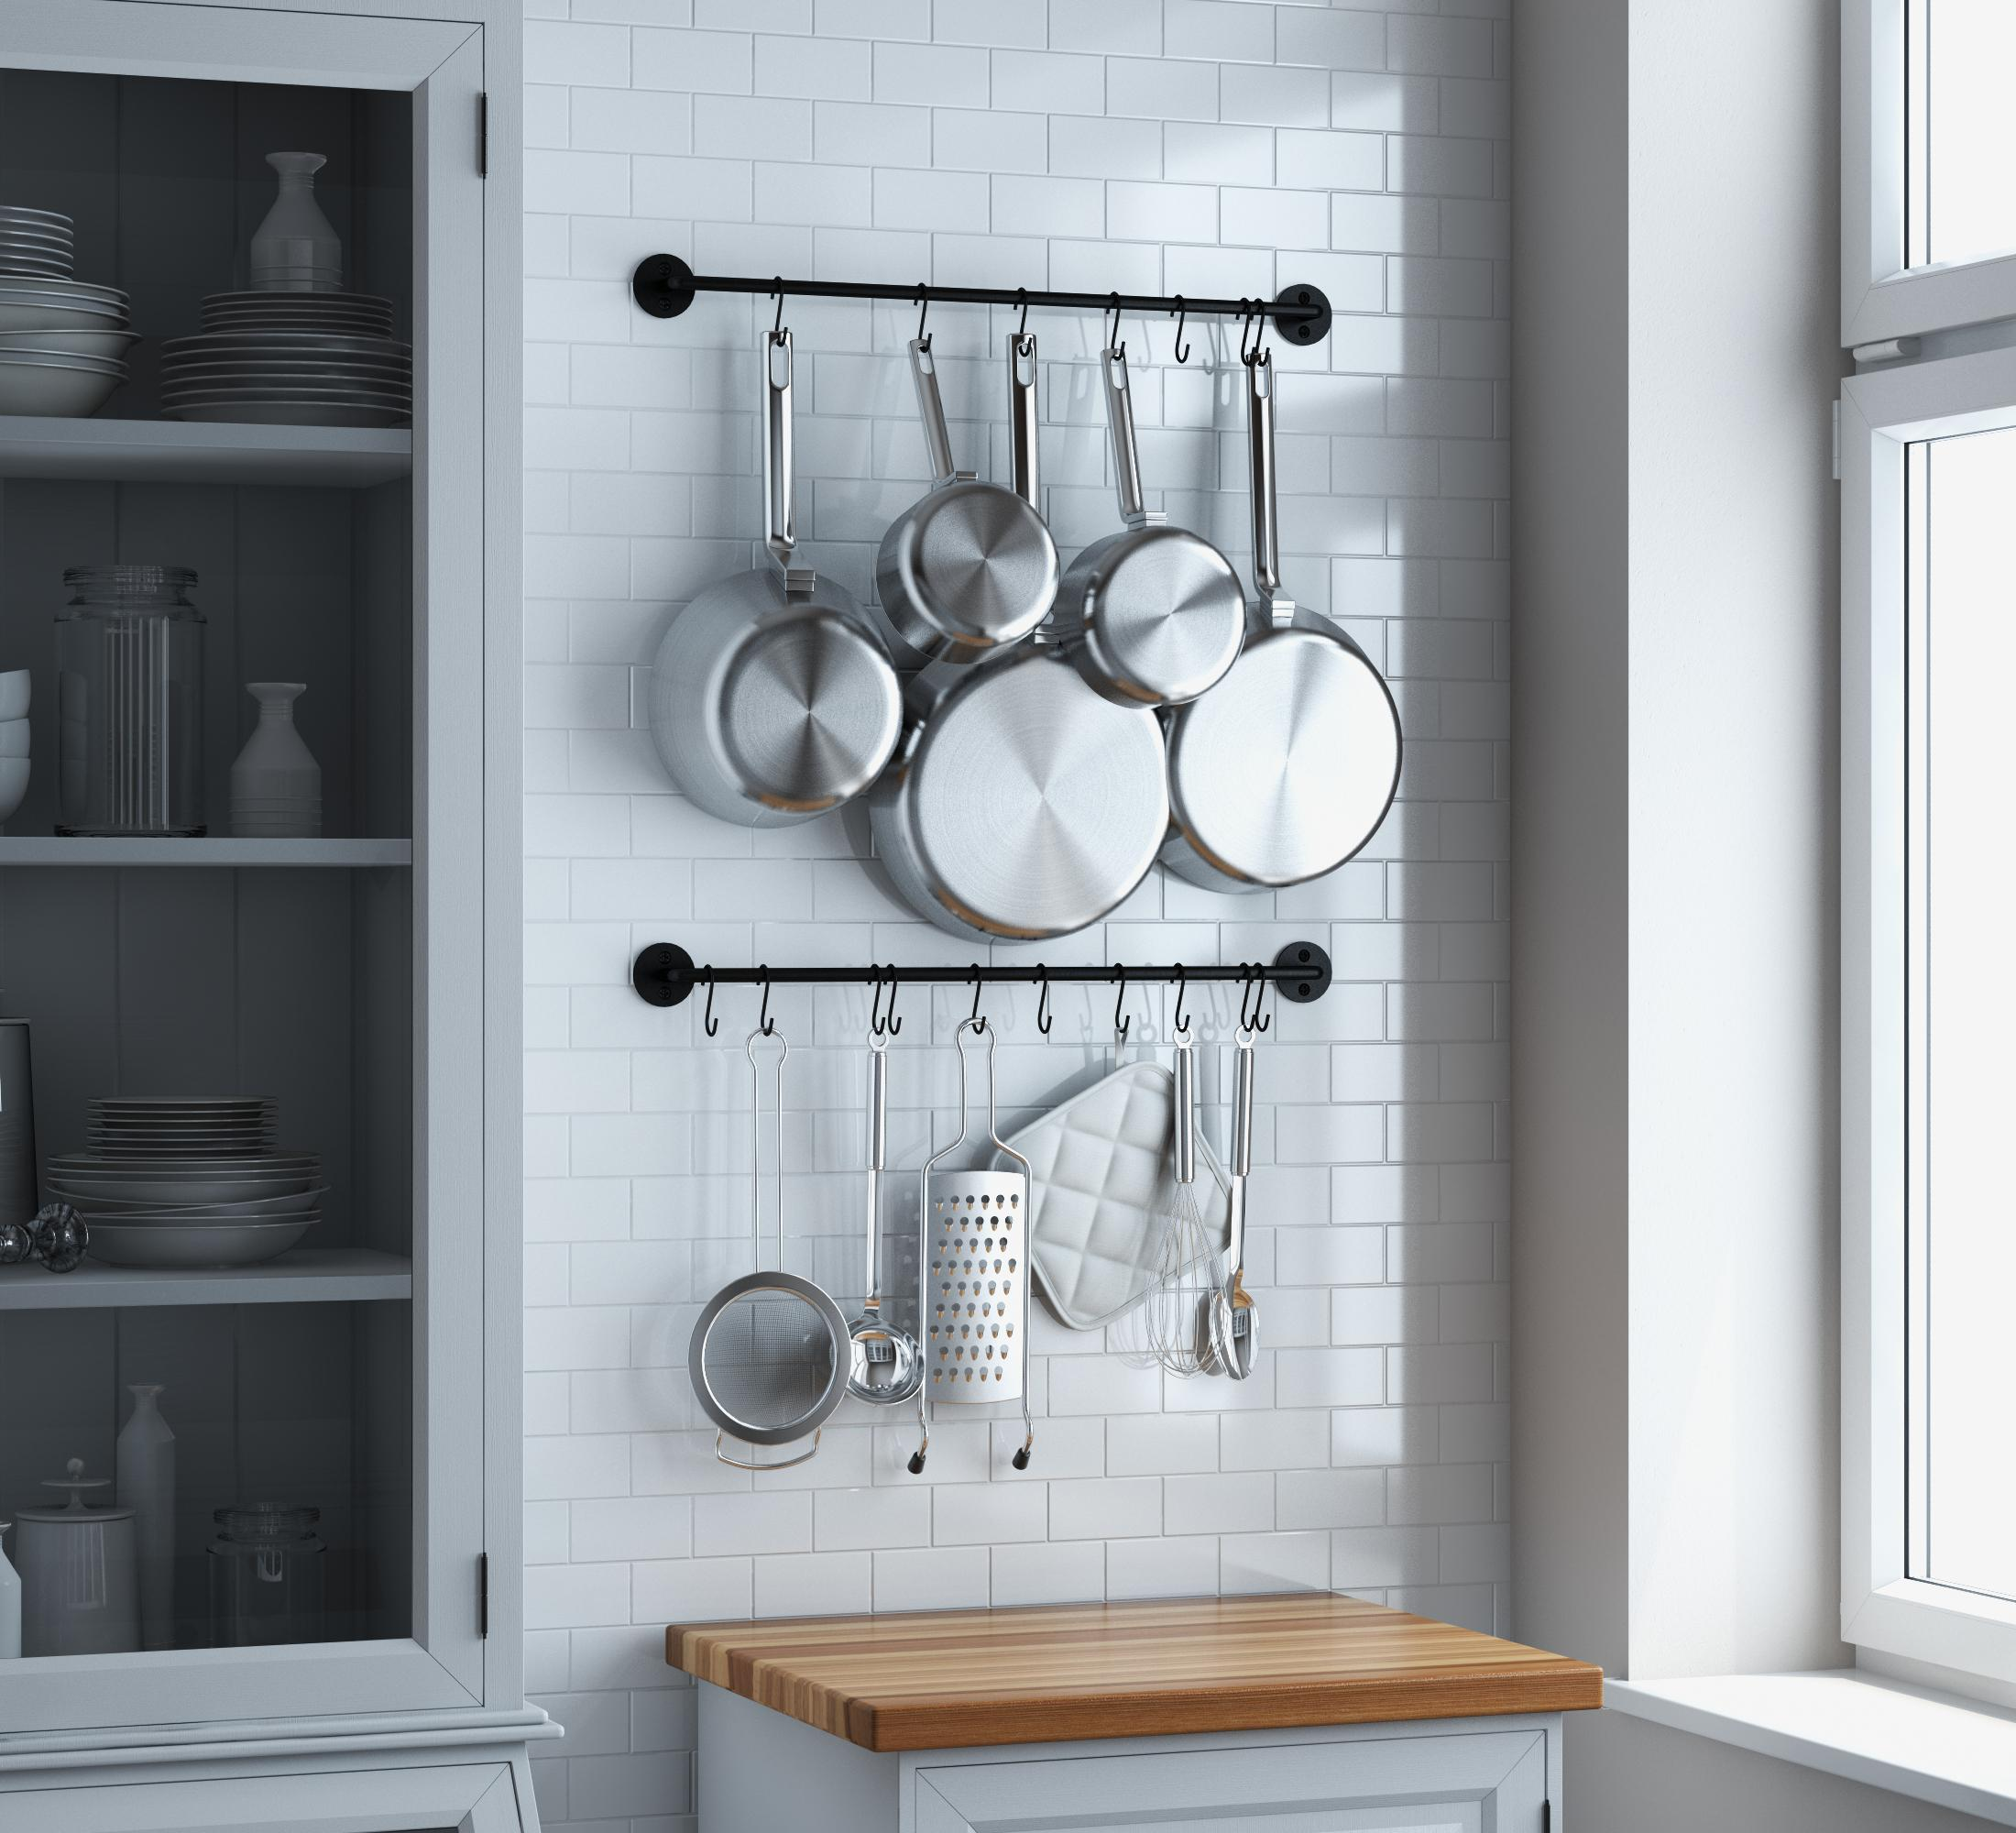 vrsupin0 Kitchen Sliding Hooks,Stainless Steel Hanging Rack Rail Organize Kitchen Tools With 6//8 Utensil Removable S Hooks Wall-Mounted Storage Hook For Bathroom And Kitchen